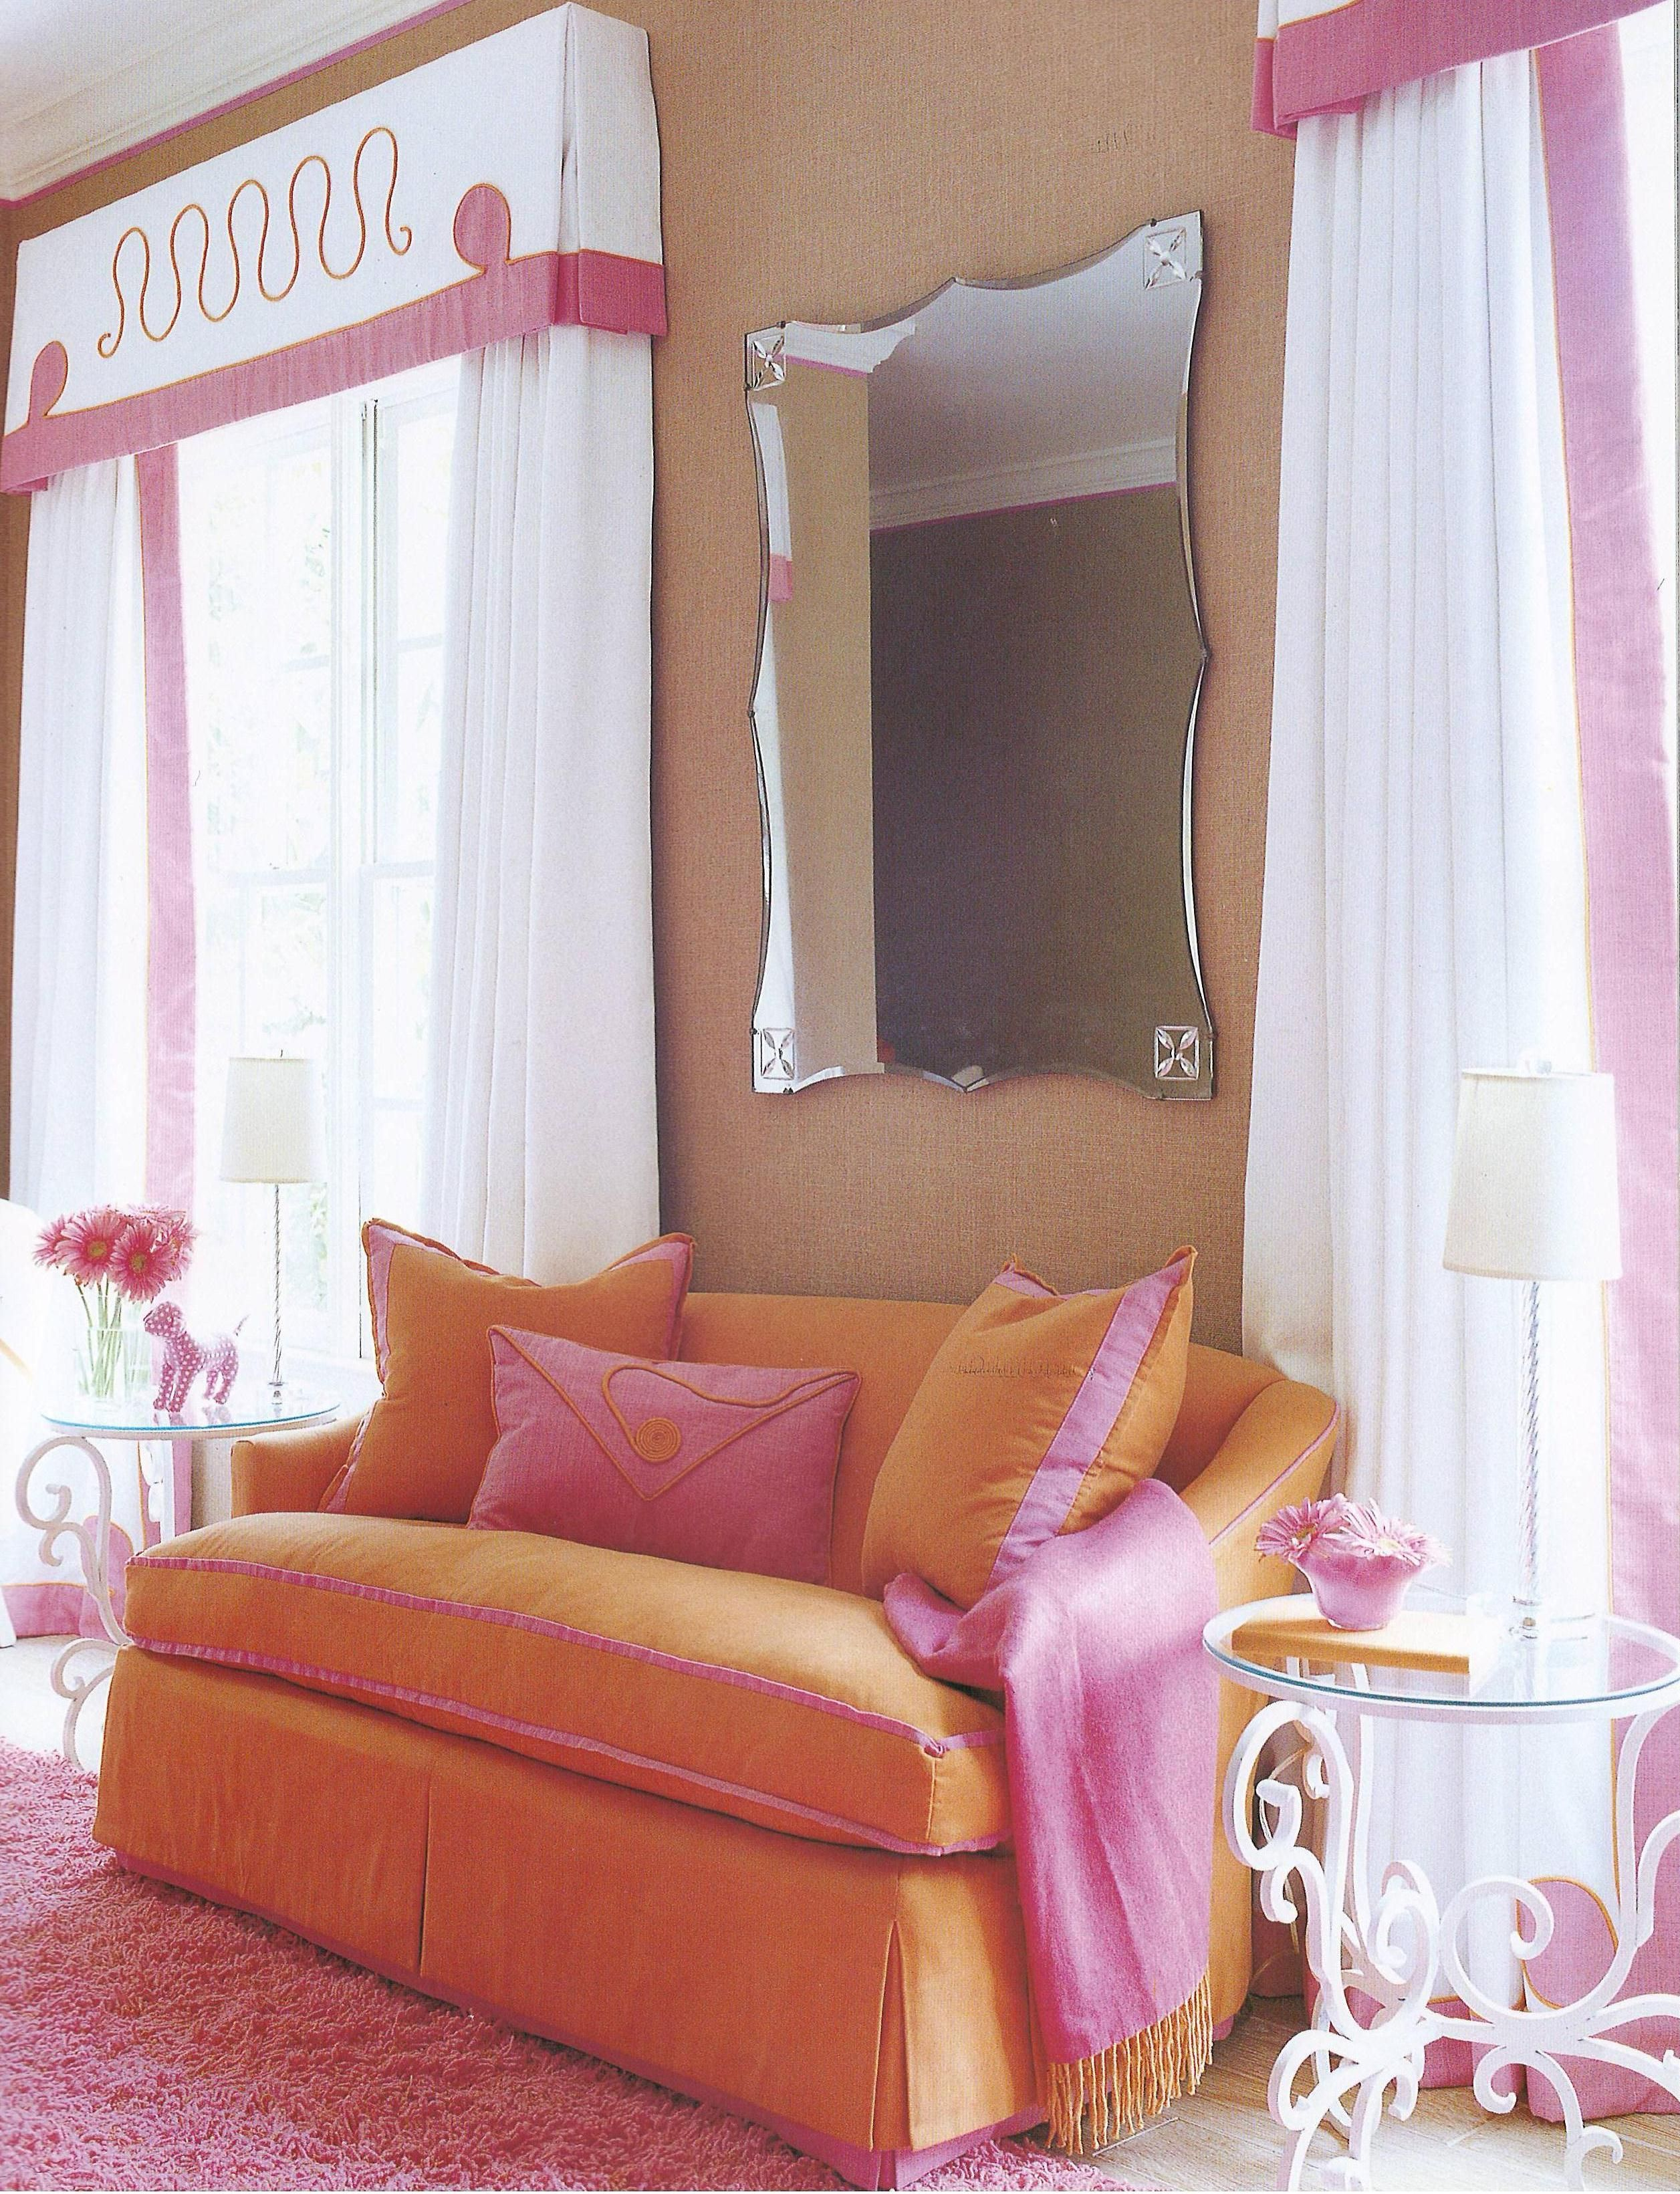 Suzanne kasler combines pink and orange for a surprisingly serene interior